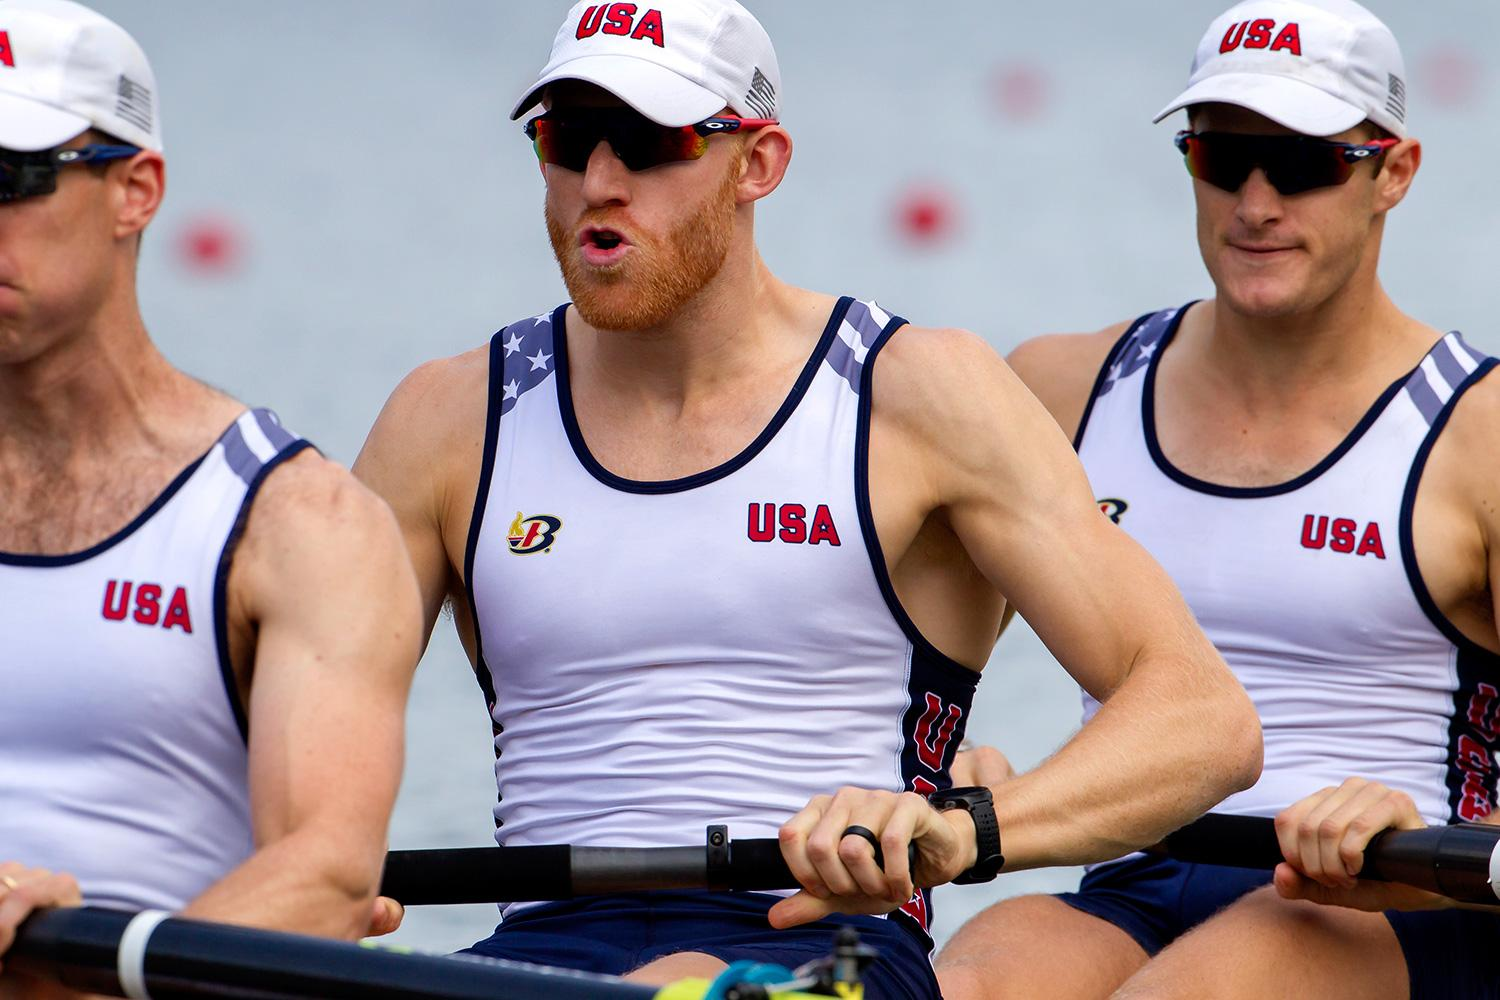 Matt Miller, center, and his U.S. teammates placed seventh overall in Rio, but their winning time in the 'B' final was the second-fastest of the day. (Photo by Ed Hewitt via row2k.com)